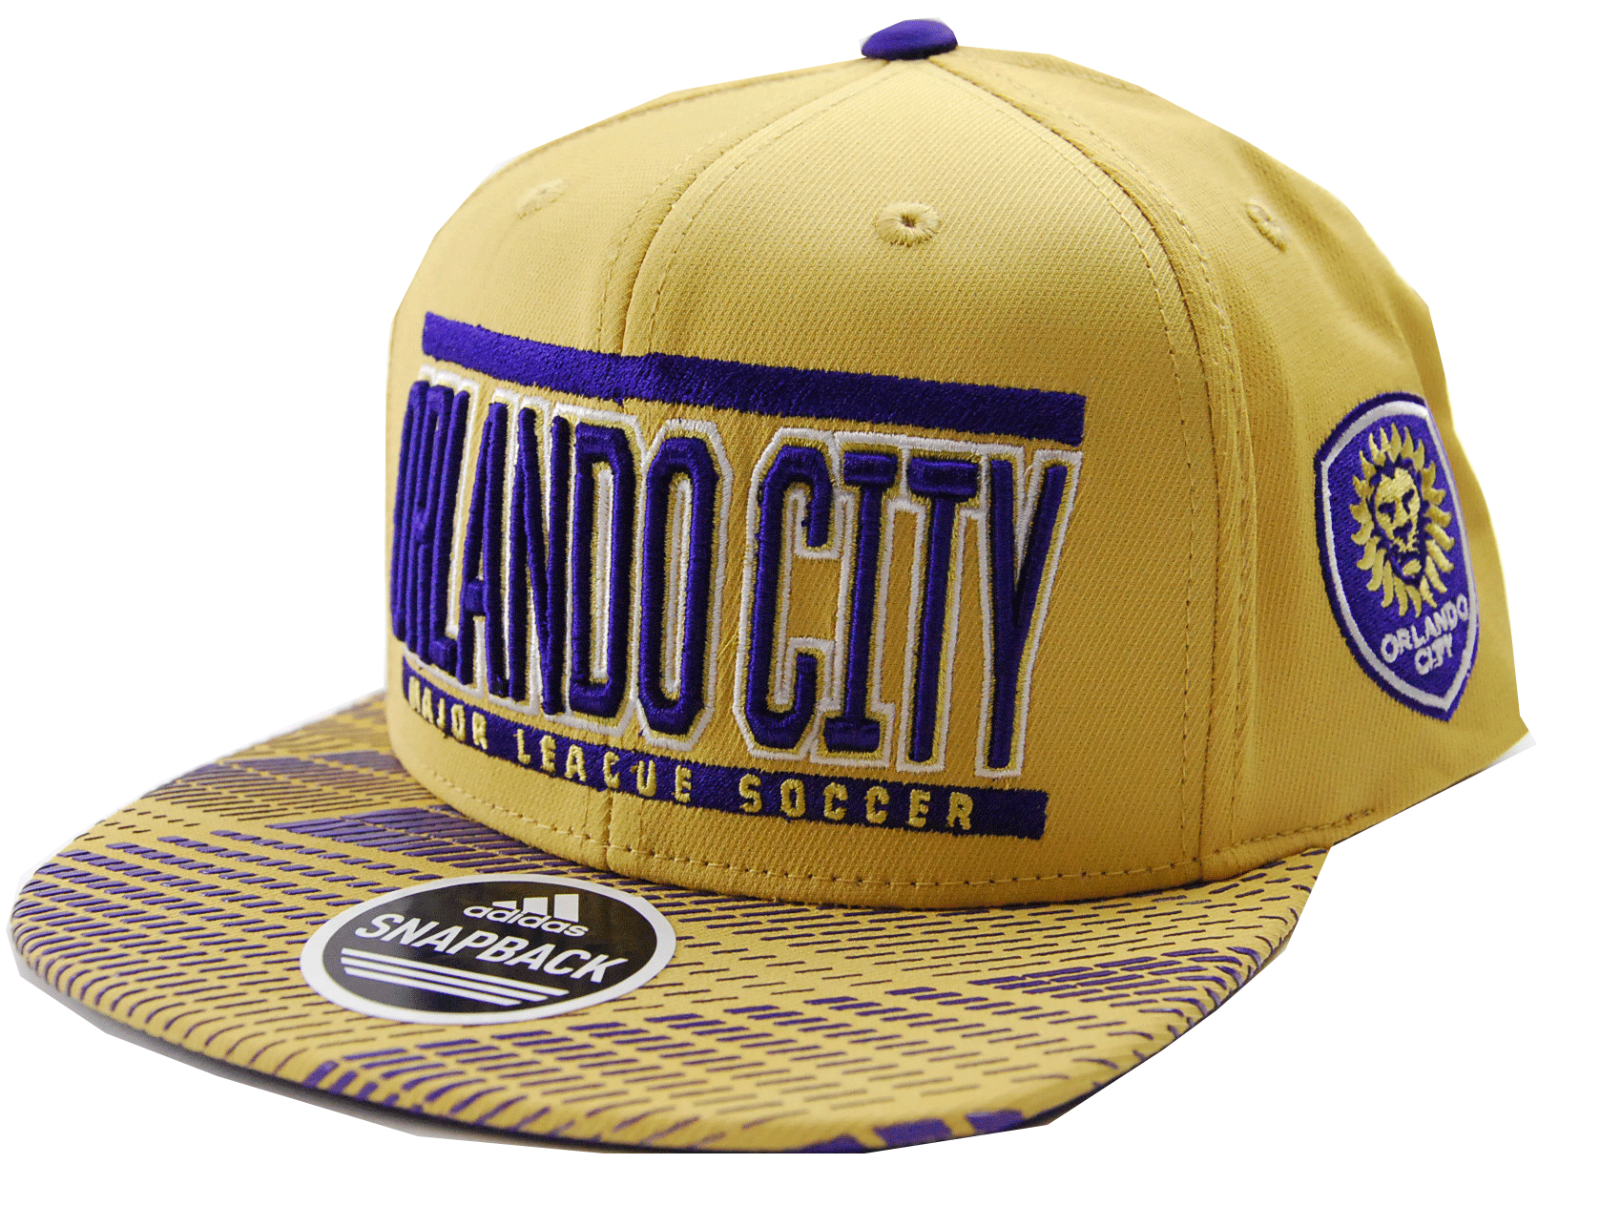 new product 11378 dbed7 S l1600. S l1600. Previous. Orlando City SC adidas VD82Z MLS Evolution Soccer  Team Snapback Cap Hat